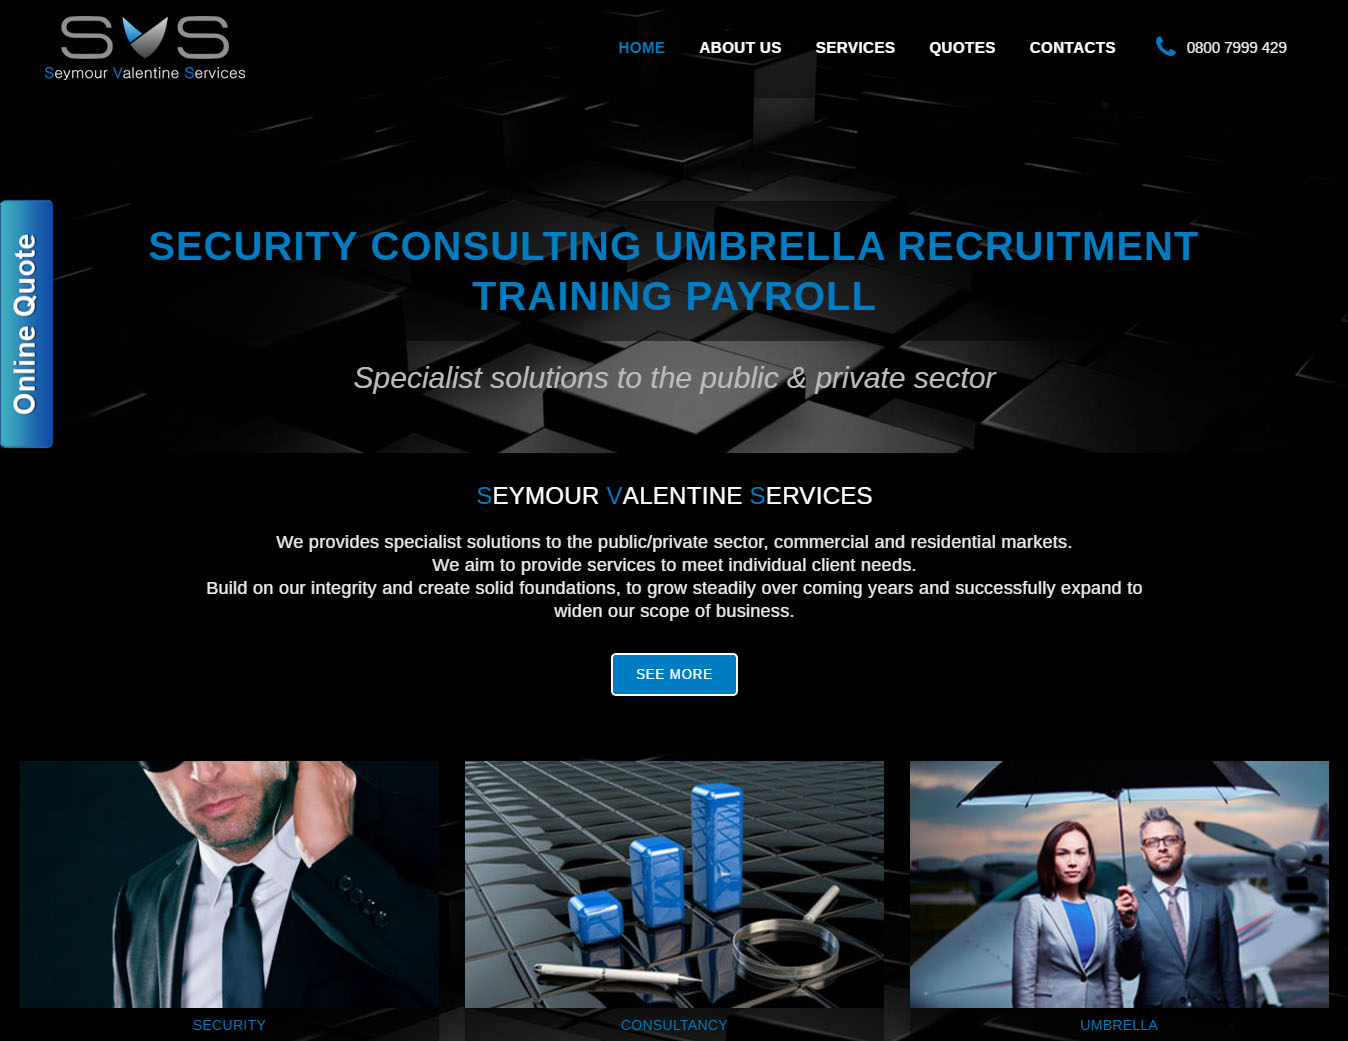 SVS Website in London, design and web devolopment in CMS by Maria Montemurro Webmaster